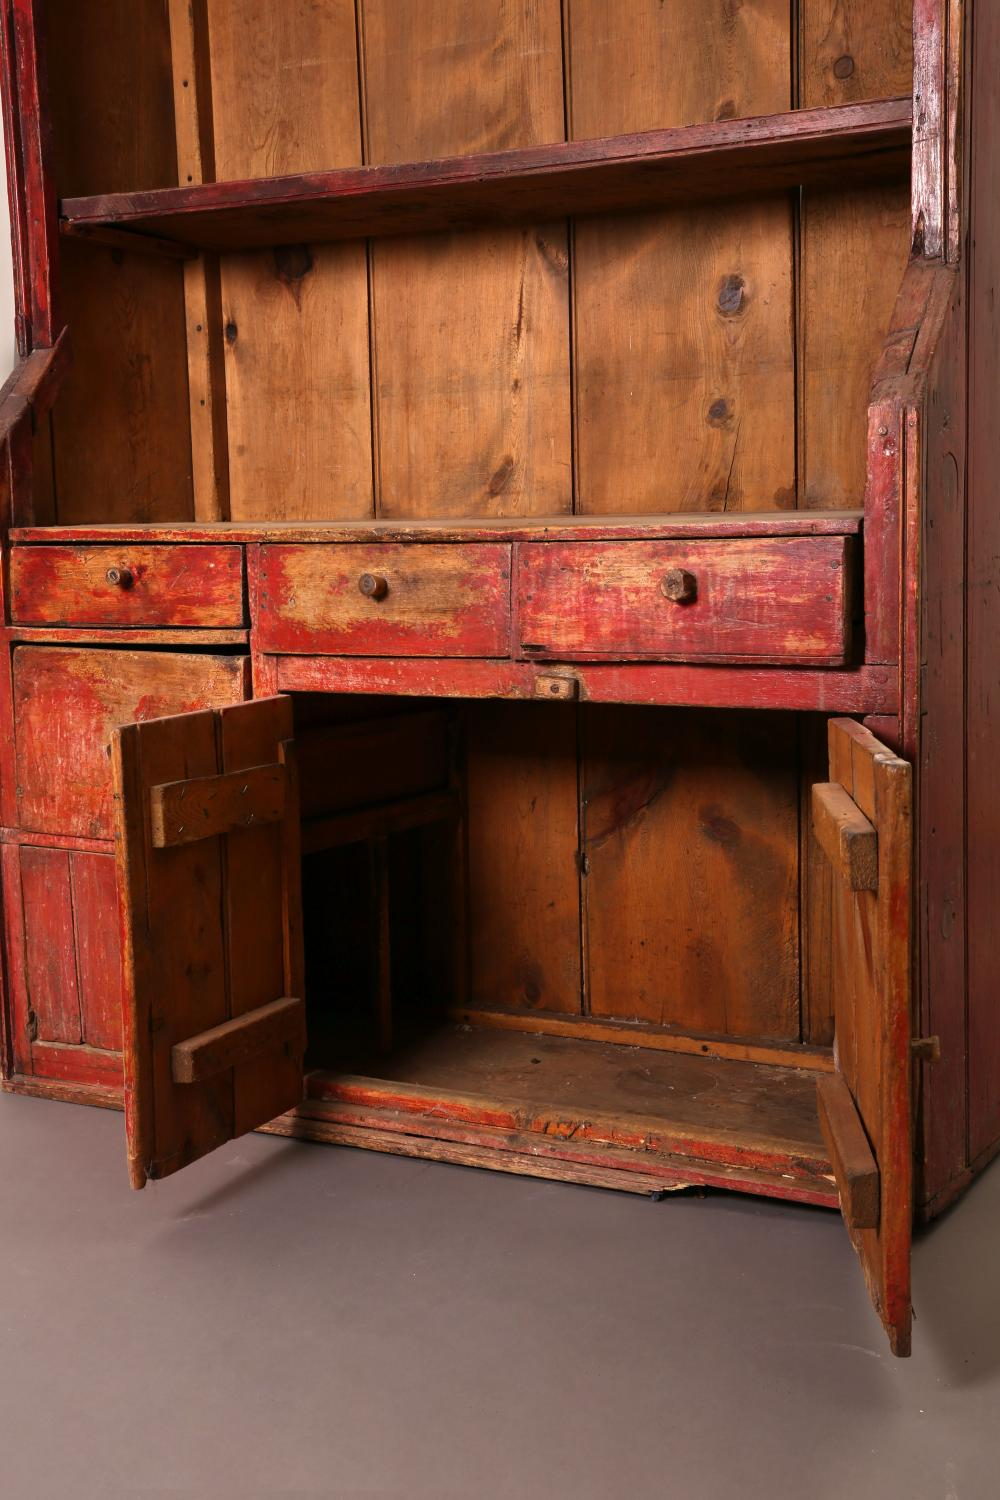 New Mexico, Large Wooden Trastero Hutch, ca. 1900